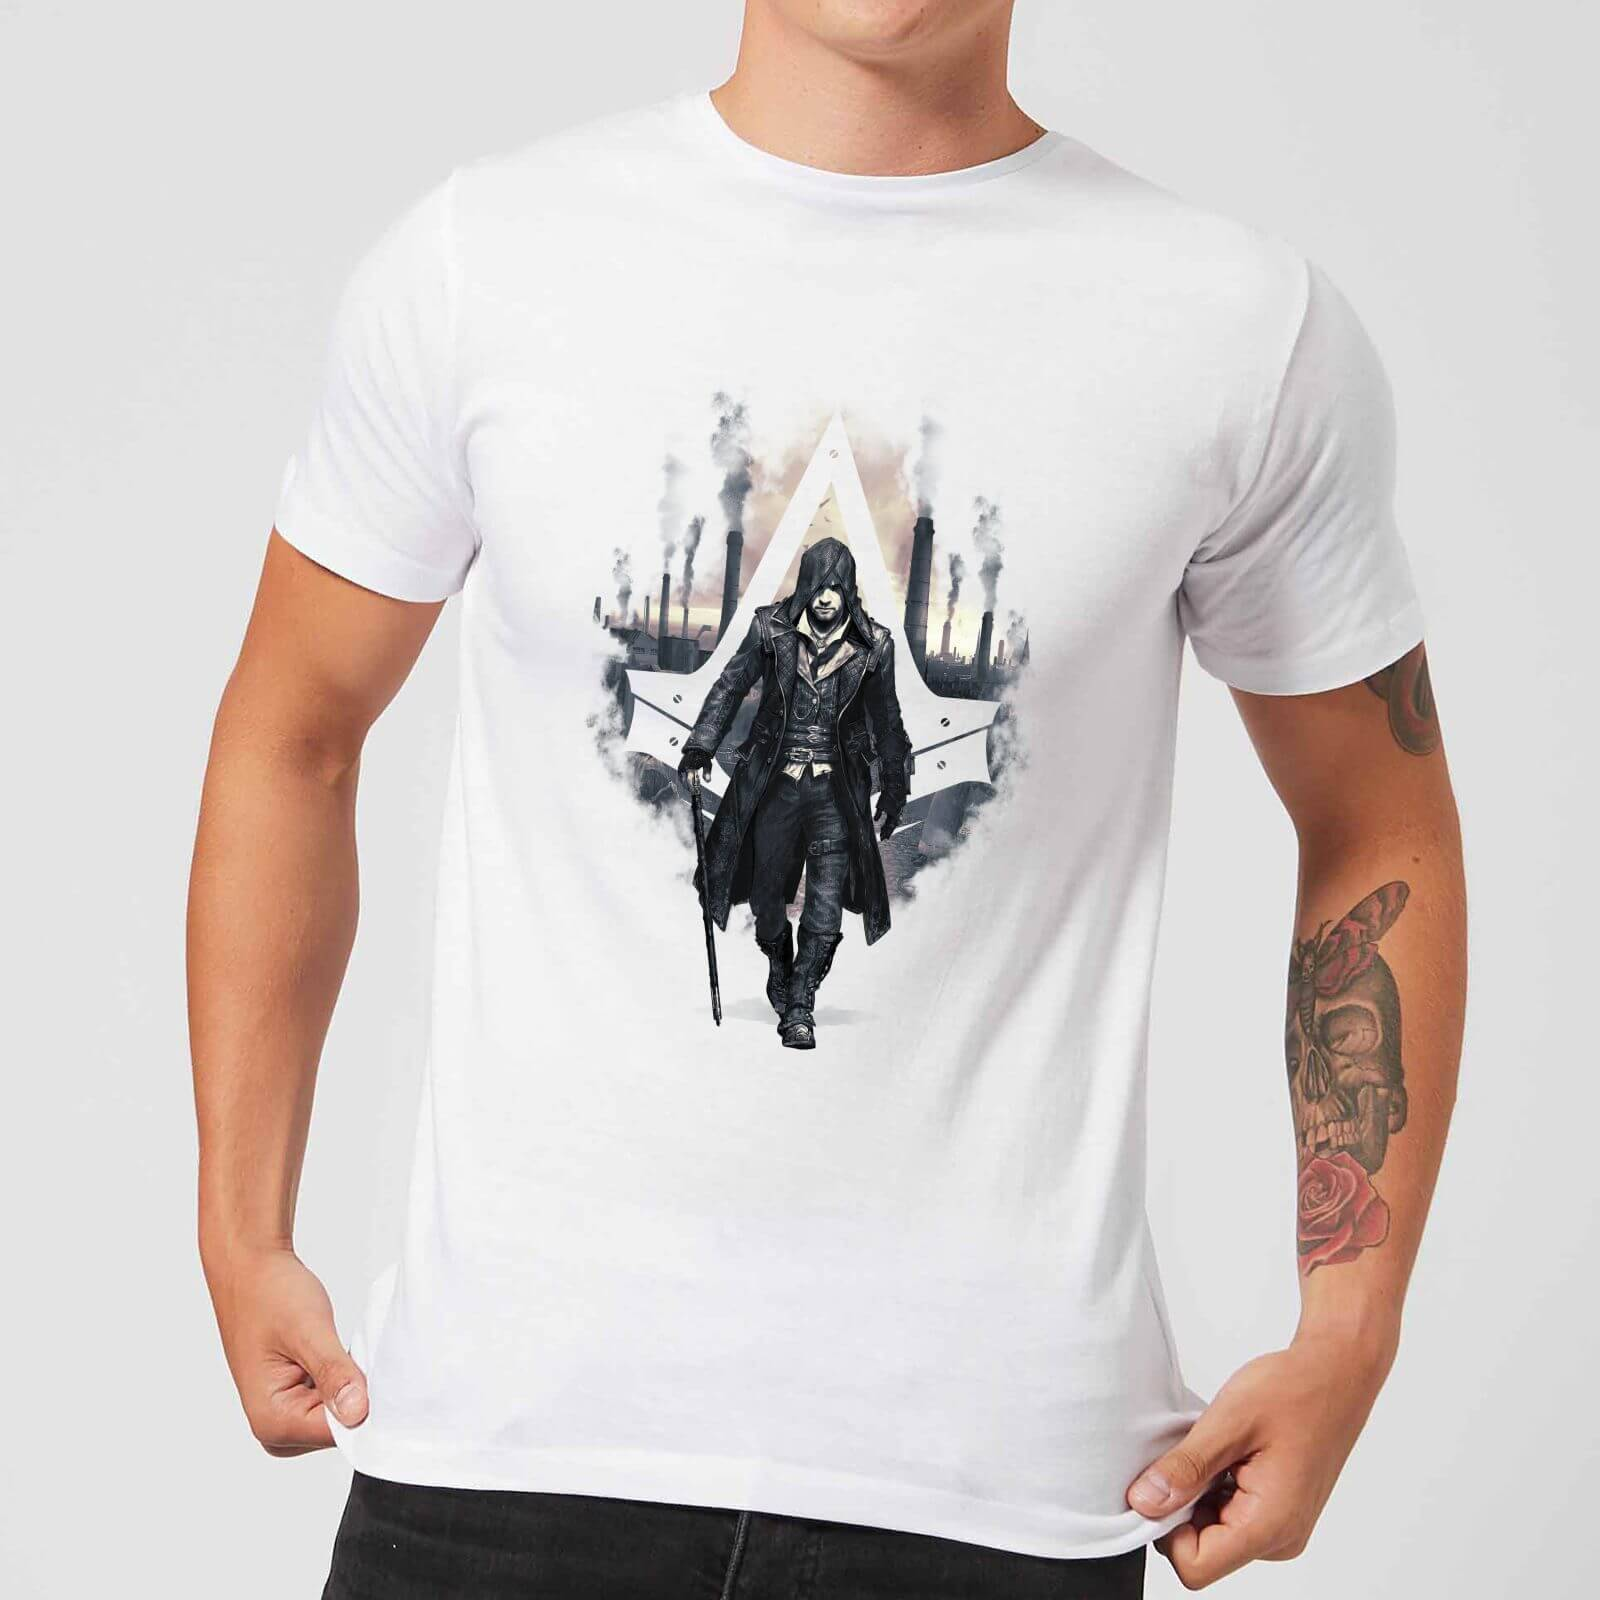 Assassin's Creed T-Shirt Homme London Skyline Assassin's Creed Syndicate - Blanc - L